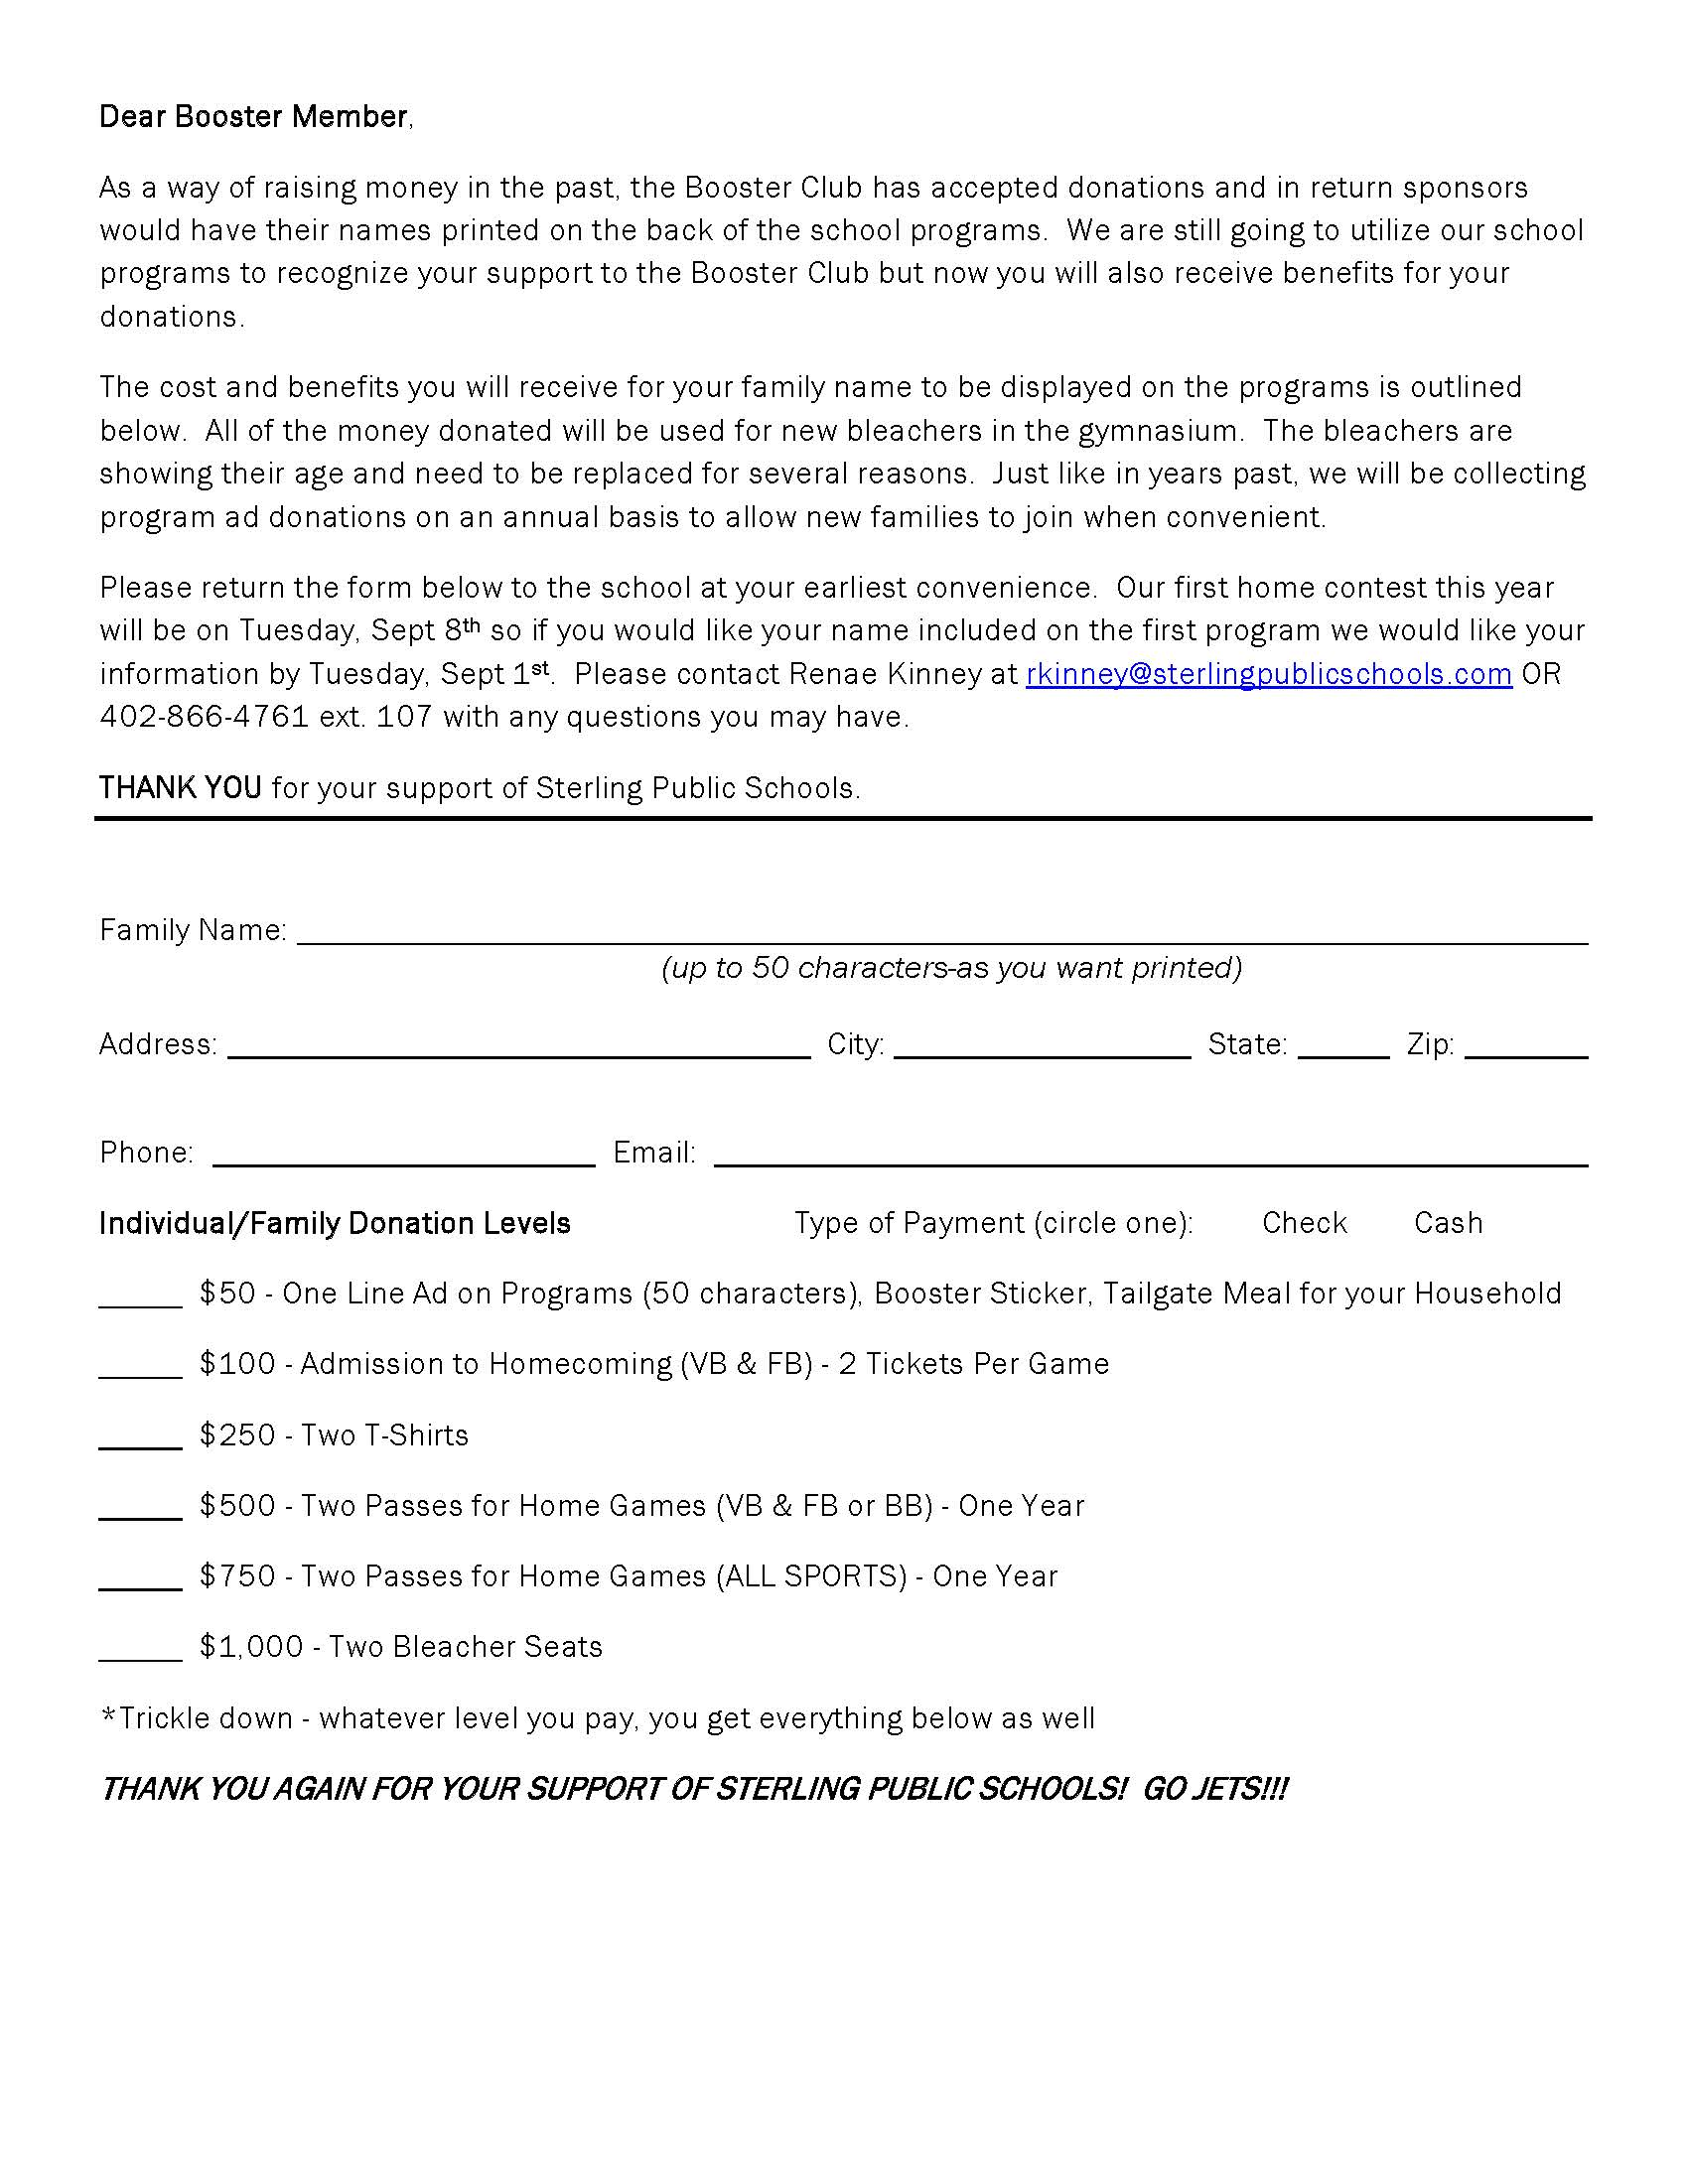 Donation Request Forms Template from www.sterlingjets.org